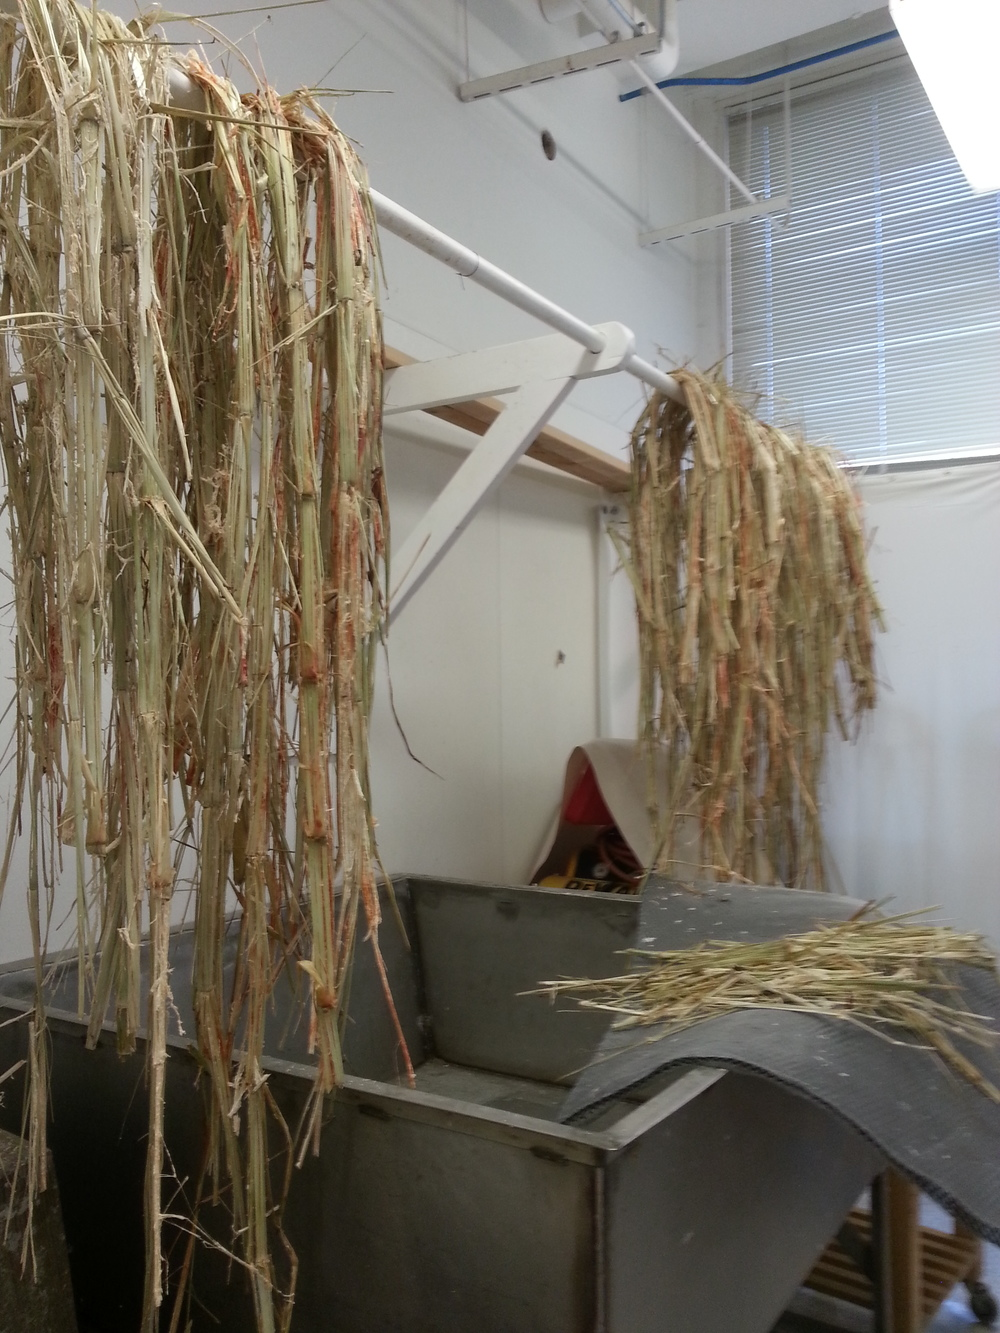 In the fall the crop was harvested by students, and prepped for pressing by stripping it of all its leaves. Once prepped it was loaded and transported to an annual sorghum festival in Fall River, Wisconsin.  ...